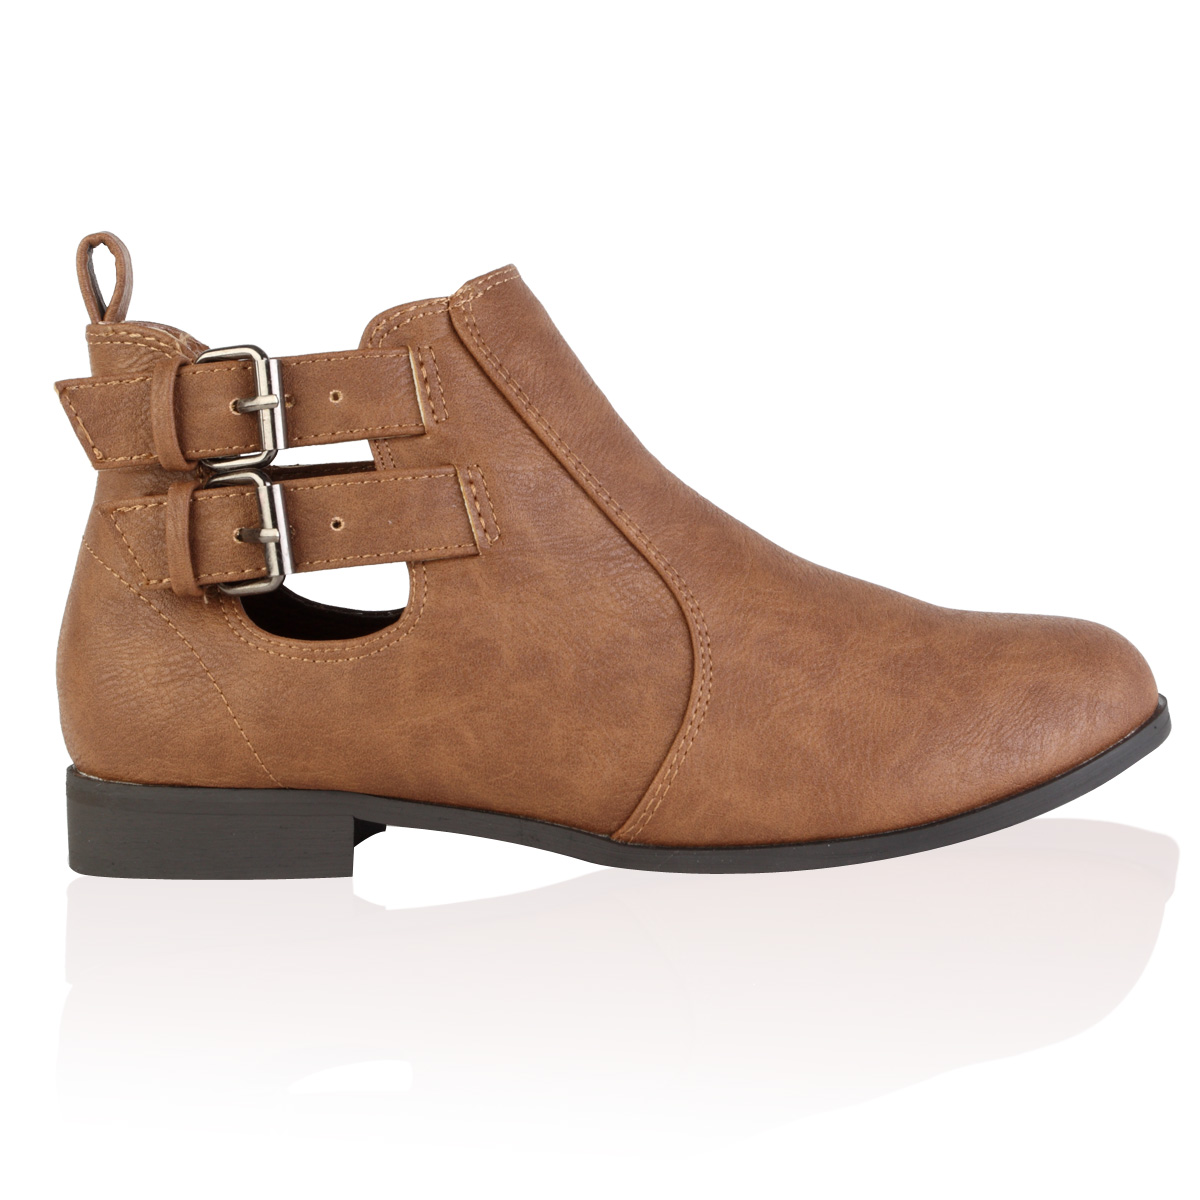 NEW WOMENS TAN BROWN PU CUT OUT BUCKLE LADIES CHELSEA ANKLE BOOTS ...